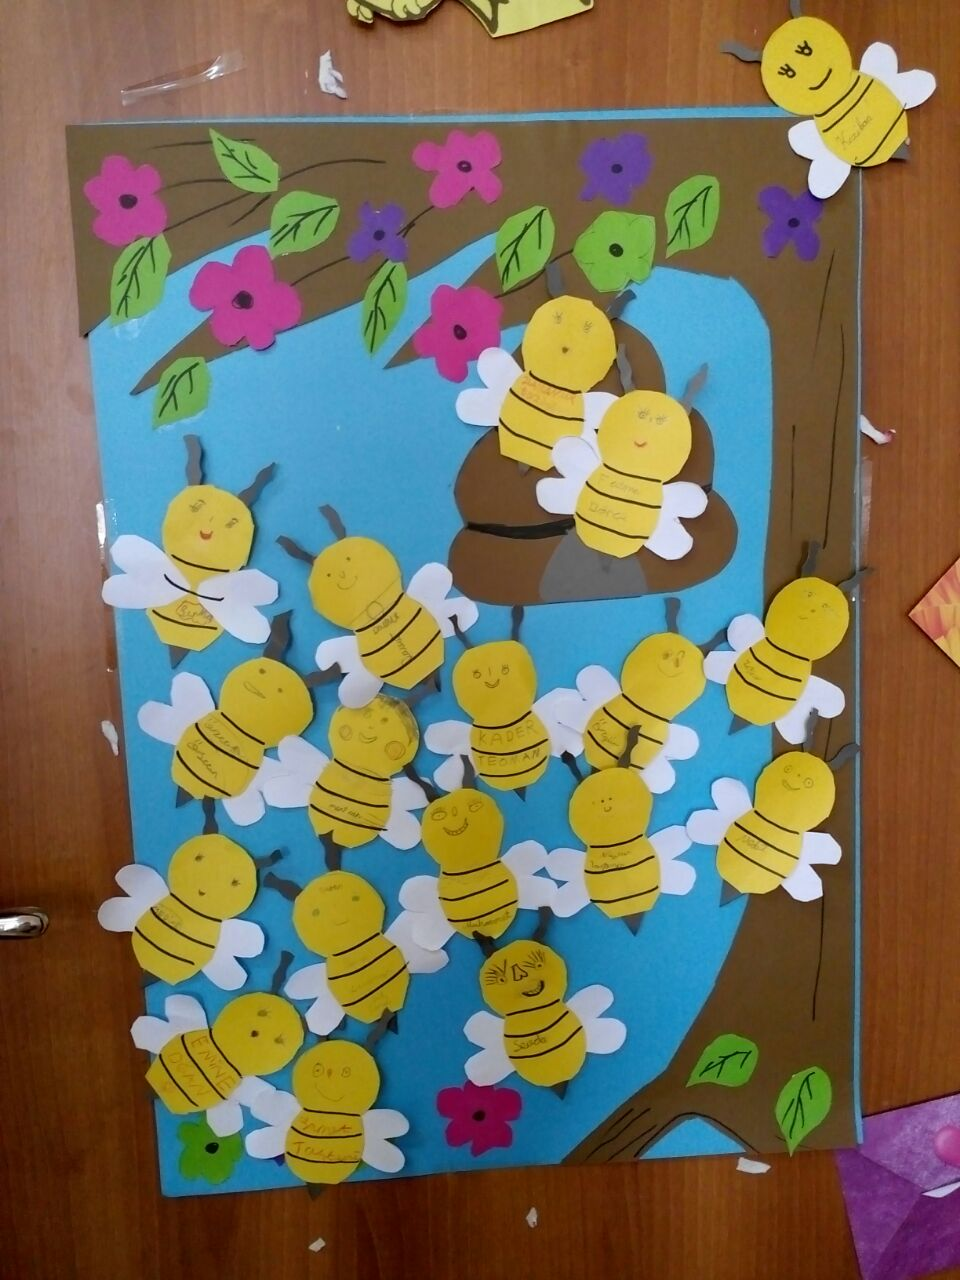 Bee Door Decorations For Kids 1 on Letter I Crafts For Preschoolers